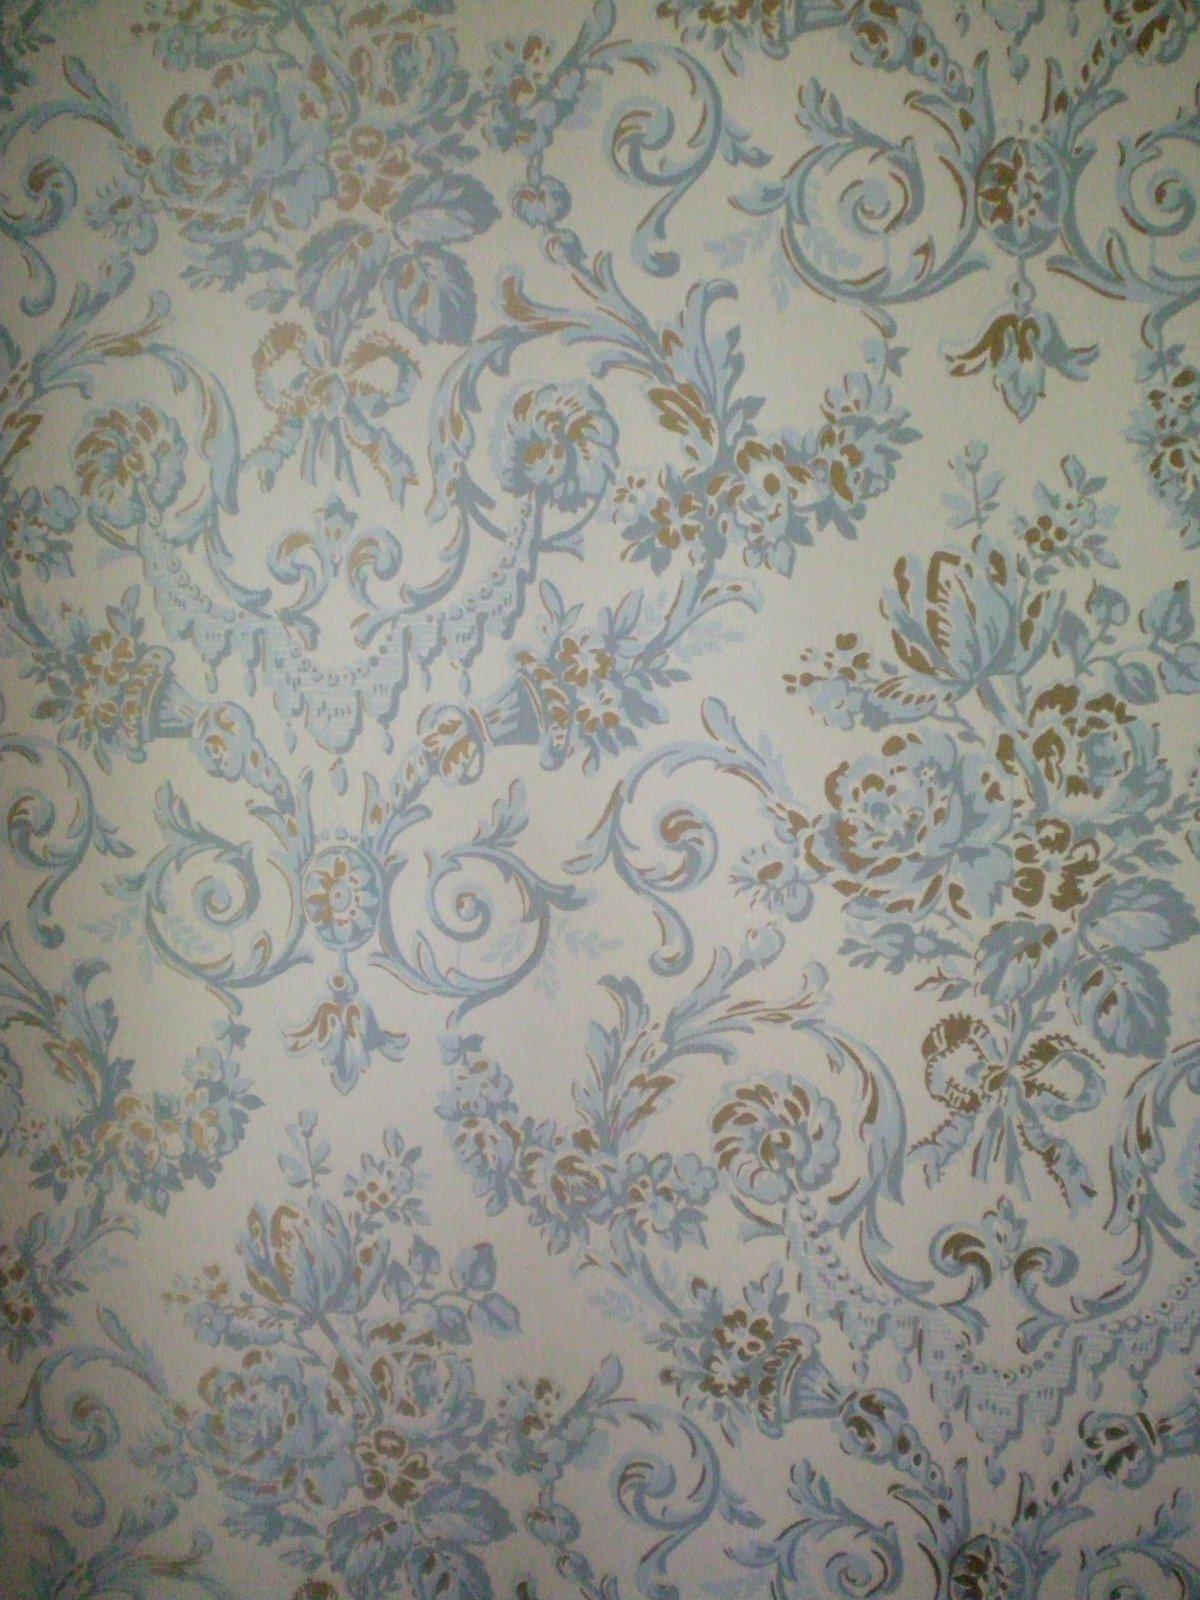 The Wallpaper Backgrounds.....: Victorian Wallpaper